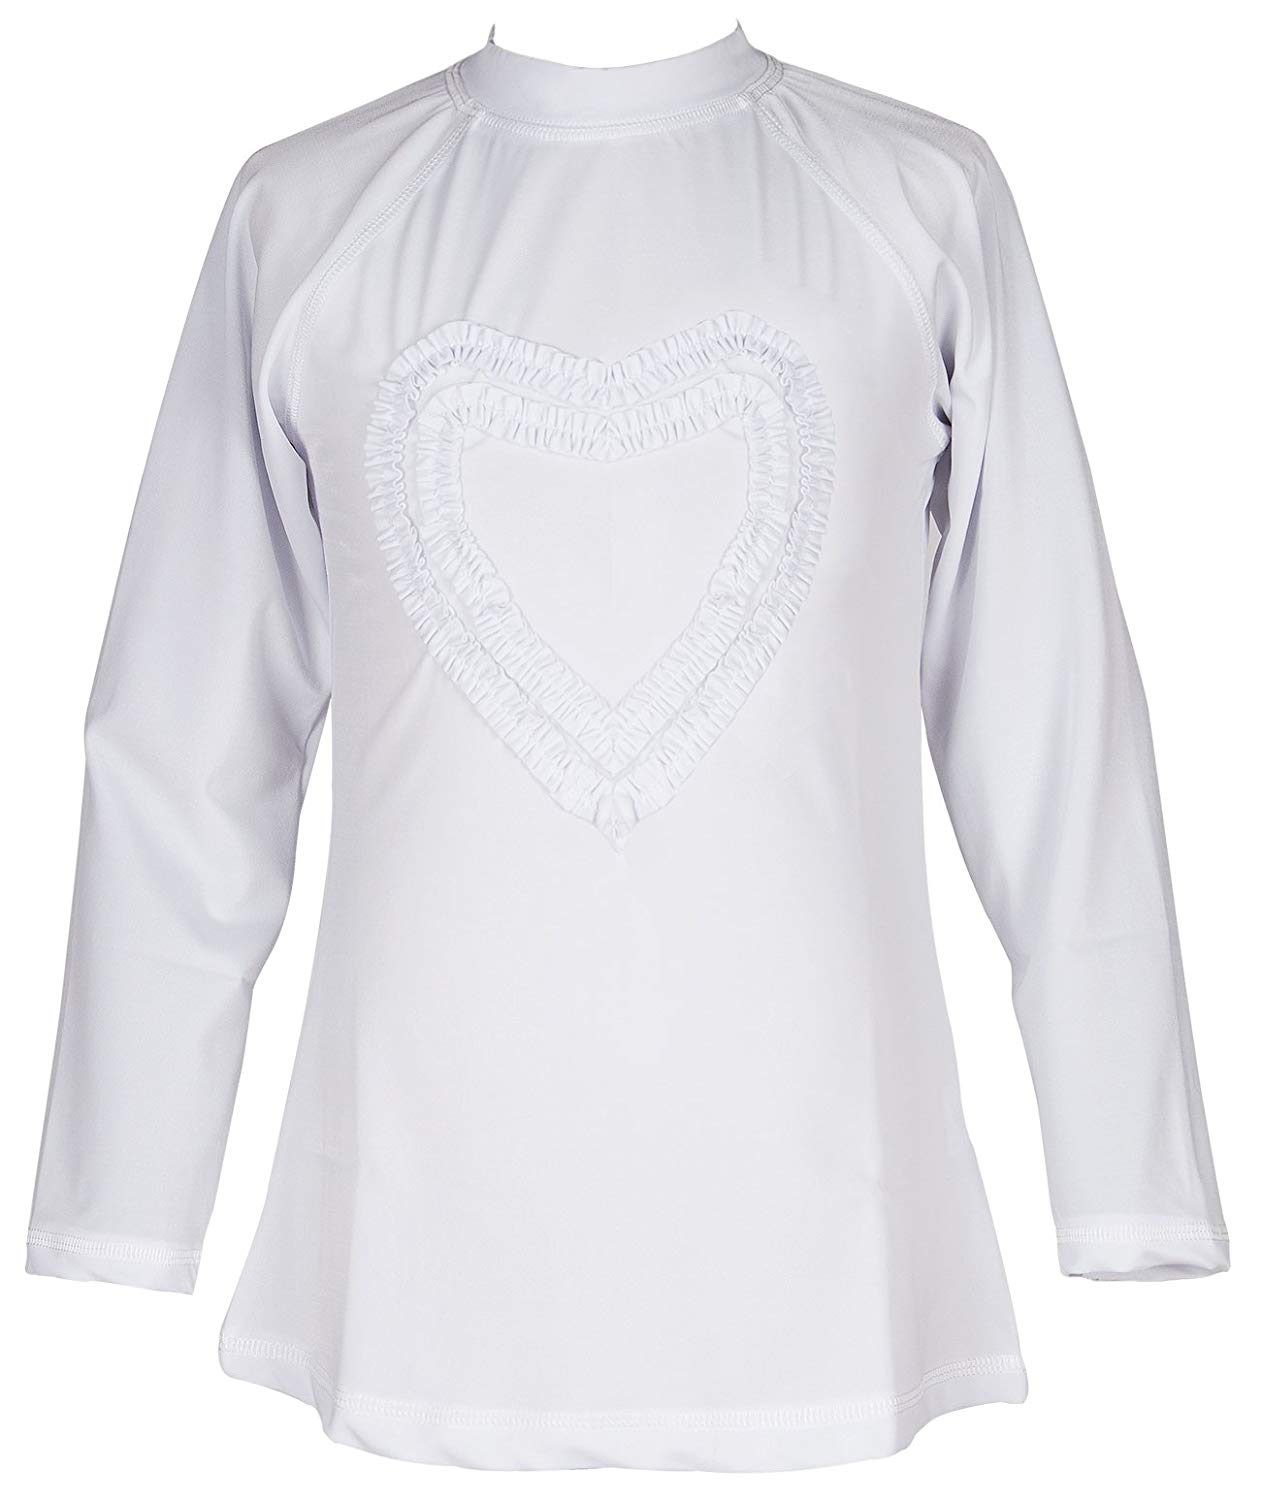 8c1b29785d772 Get Quotations · Girls' Ruffled Valentine Solid Rash Guard Swim Shirts UPF  50+ Sun Protective